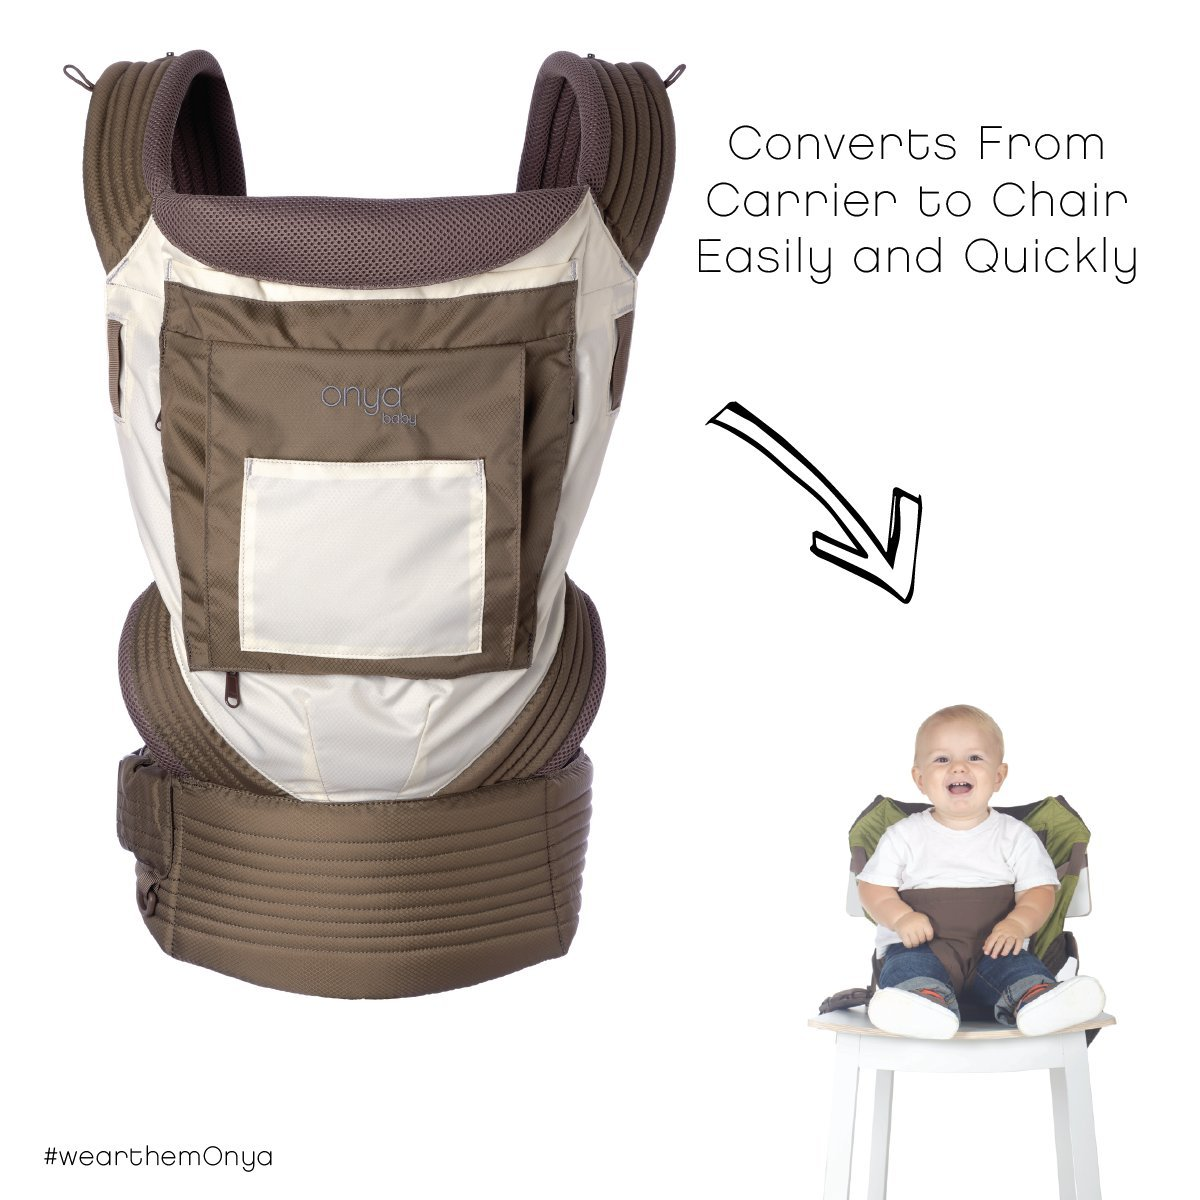 Onya Baby Outback Best Baby Carrier